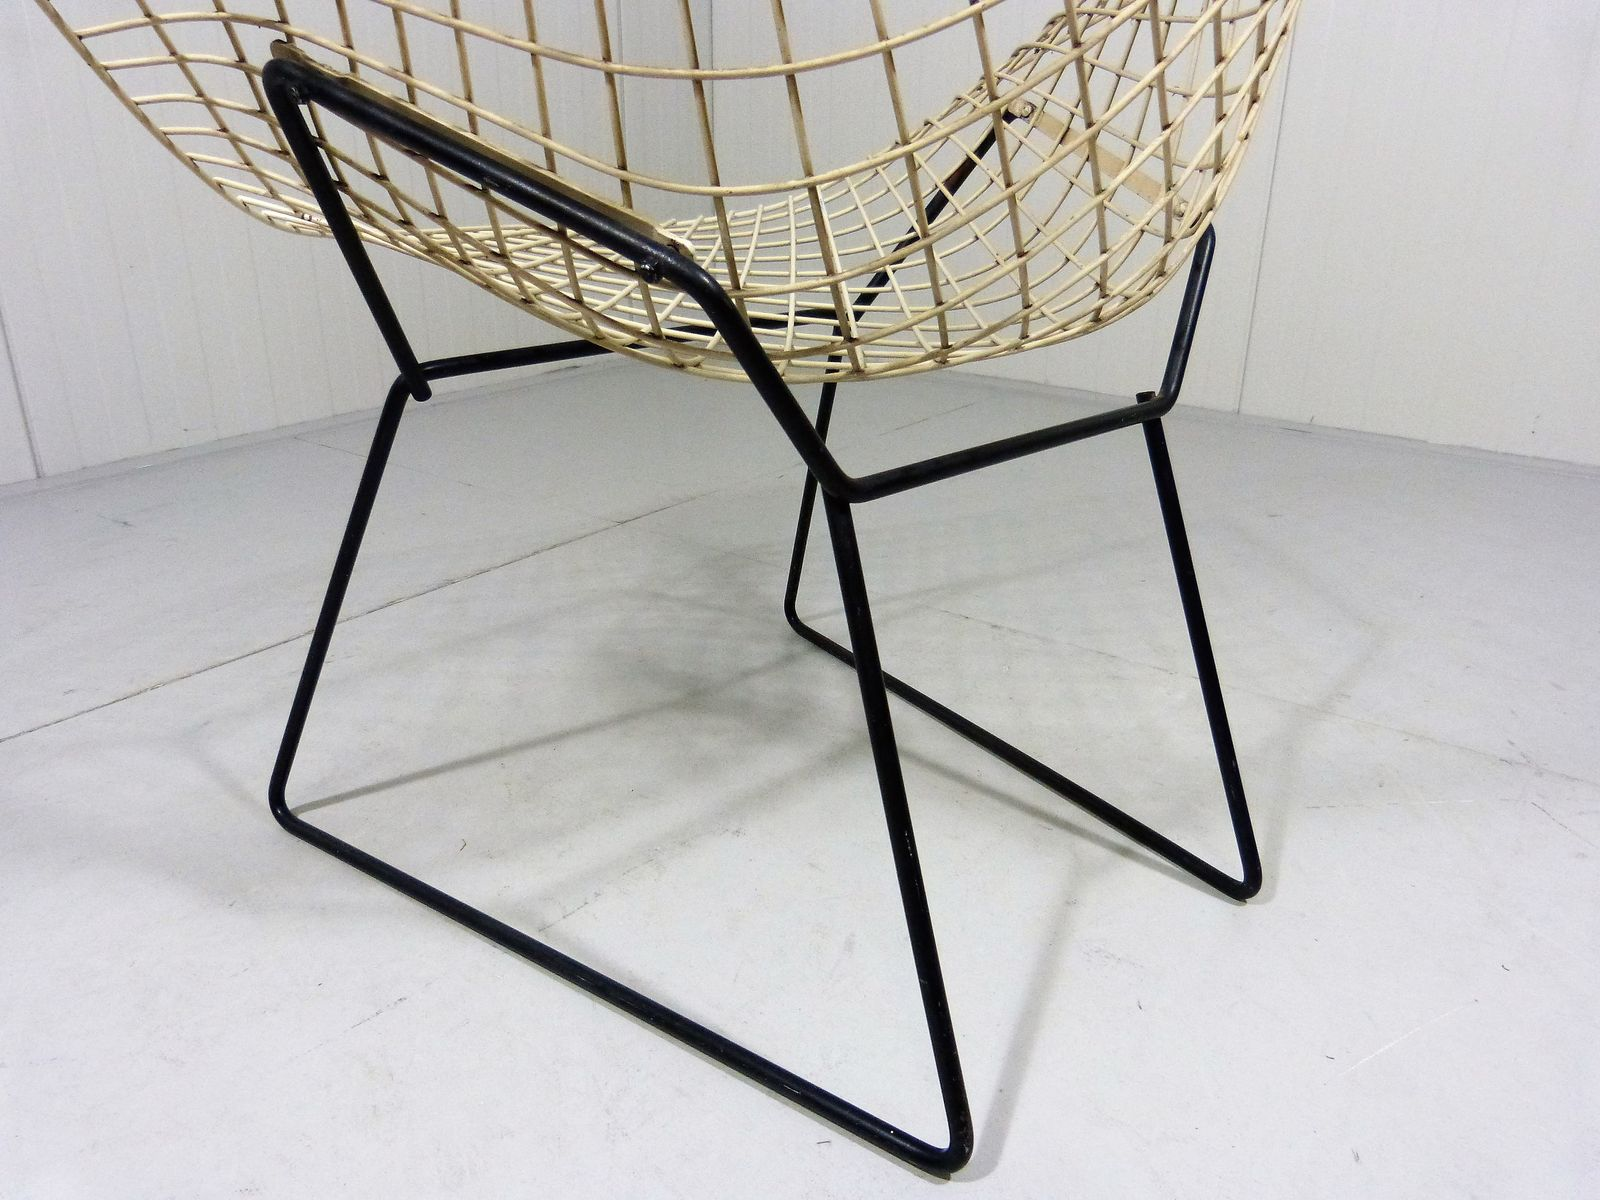 Mid century diamond chair by harry bertoia for knoll inc knoll international for sale at pamono - Knoll inc chairs ...